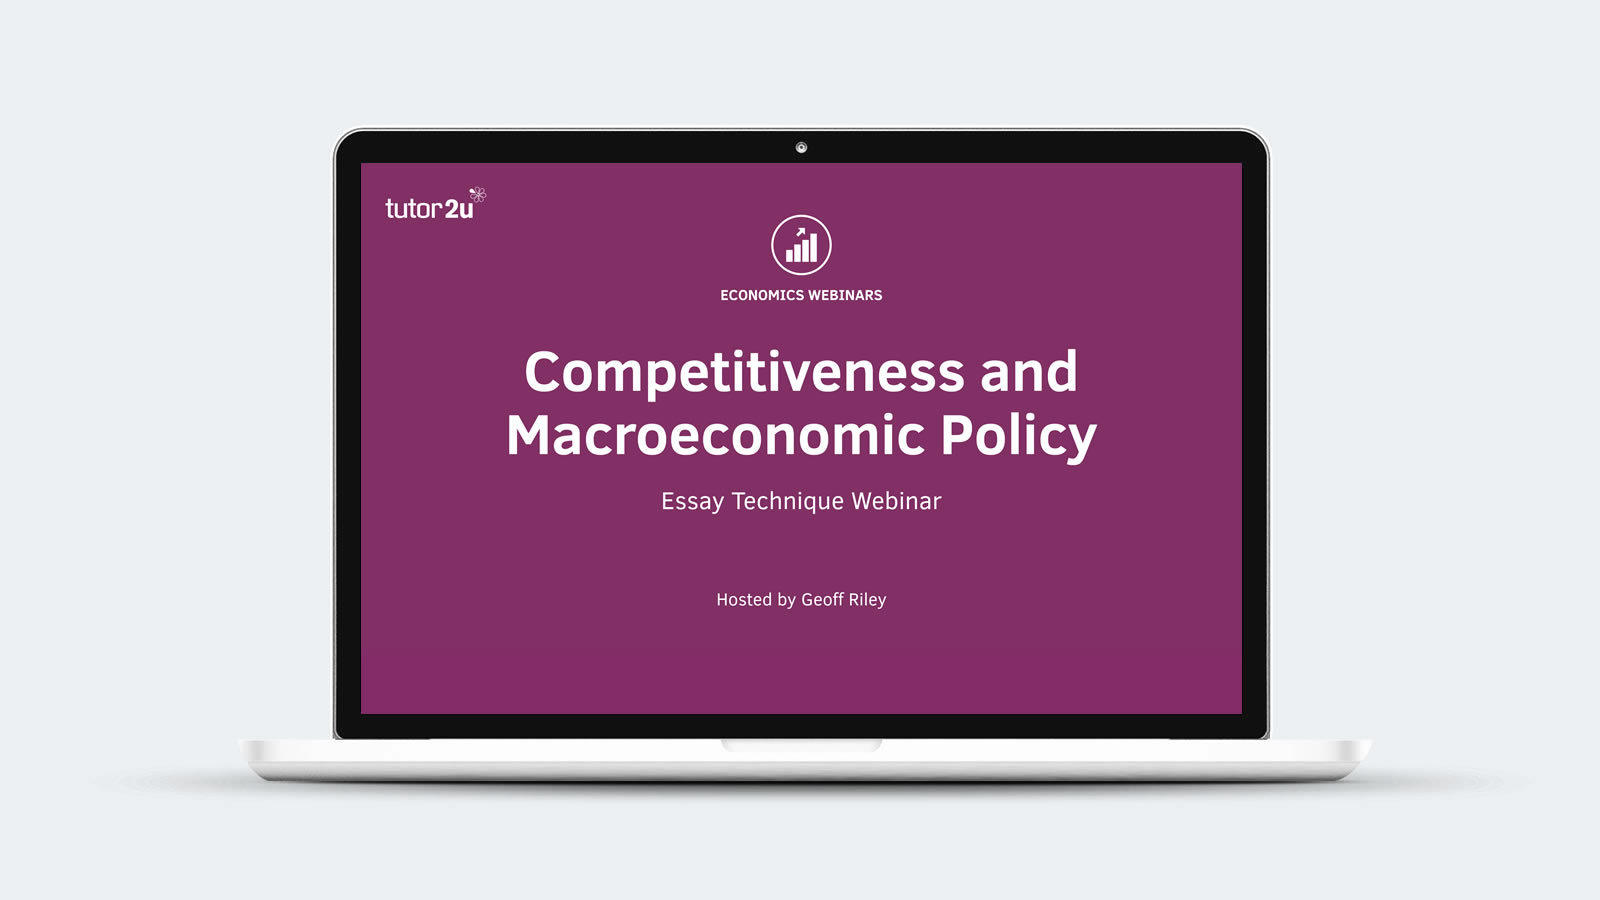 inflation and monitory policies in india economics essay Rise to this emperor of economic maladies and what policies are best  2 when  analyzing inflation in india, throughout this paper, i shall be  tighter monetary  and fiscal measures brought inflation down in the 1980s and.